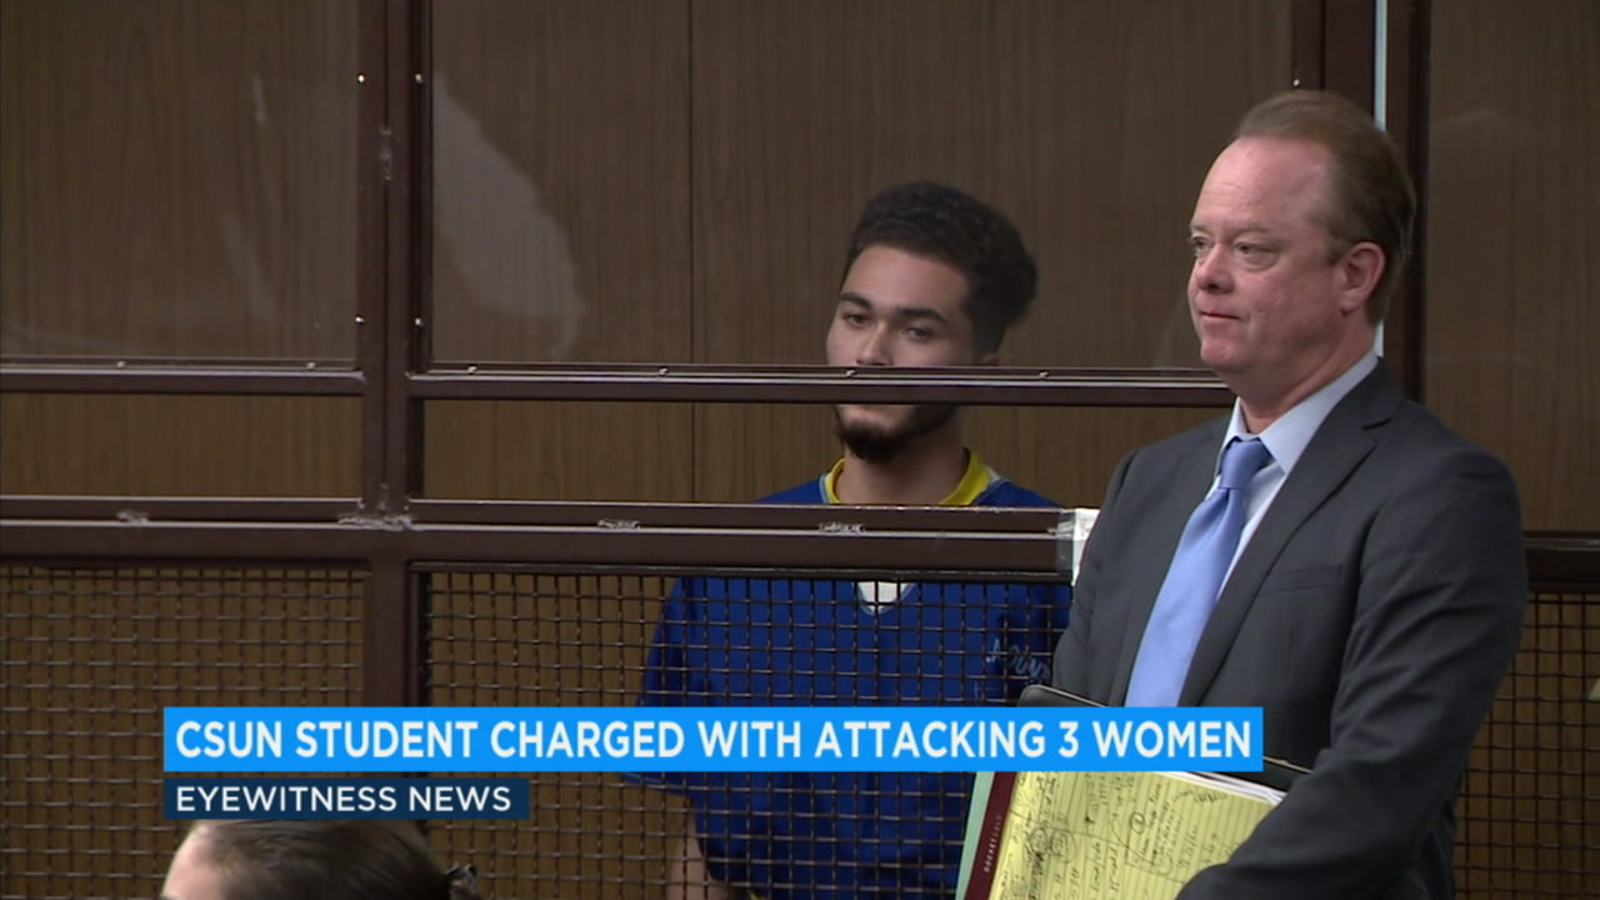 Ex-CSUN student athlete sentenced to 8 years in prison for raping woman on campus